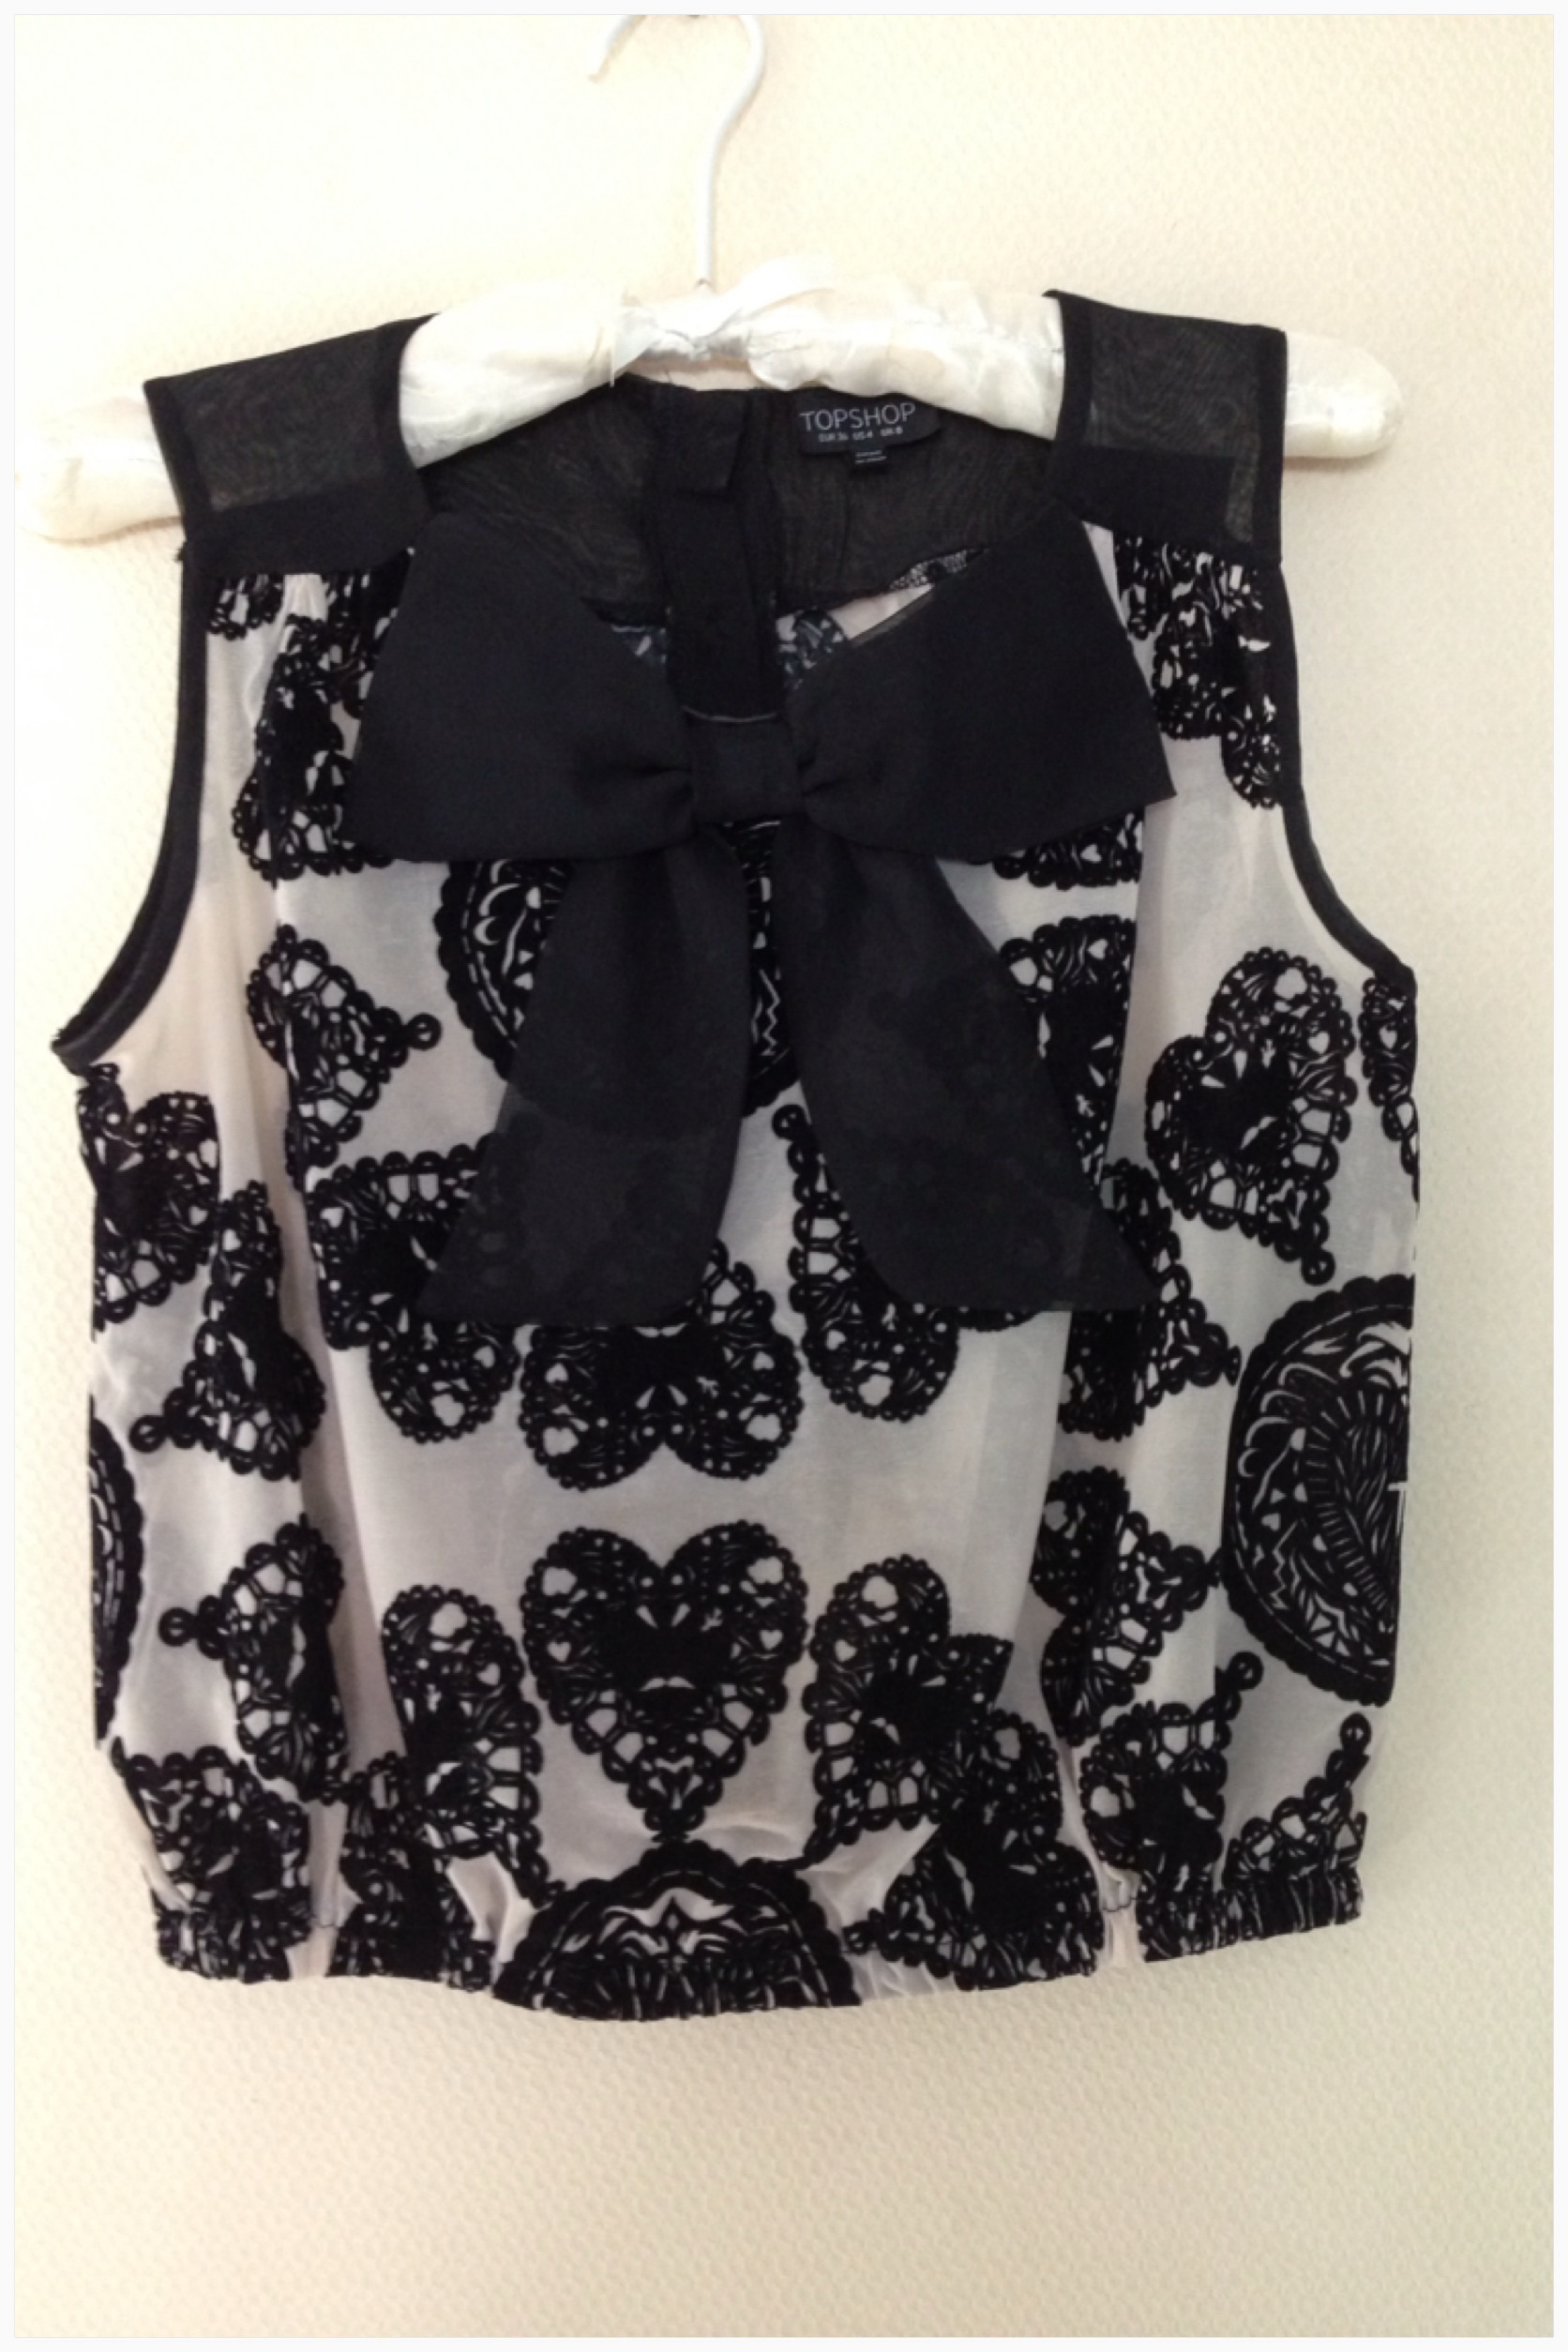 Topshop bow Top size uk 8